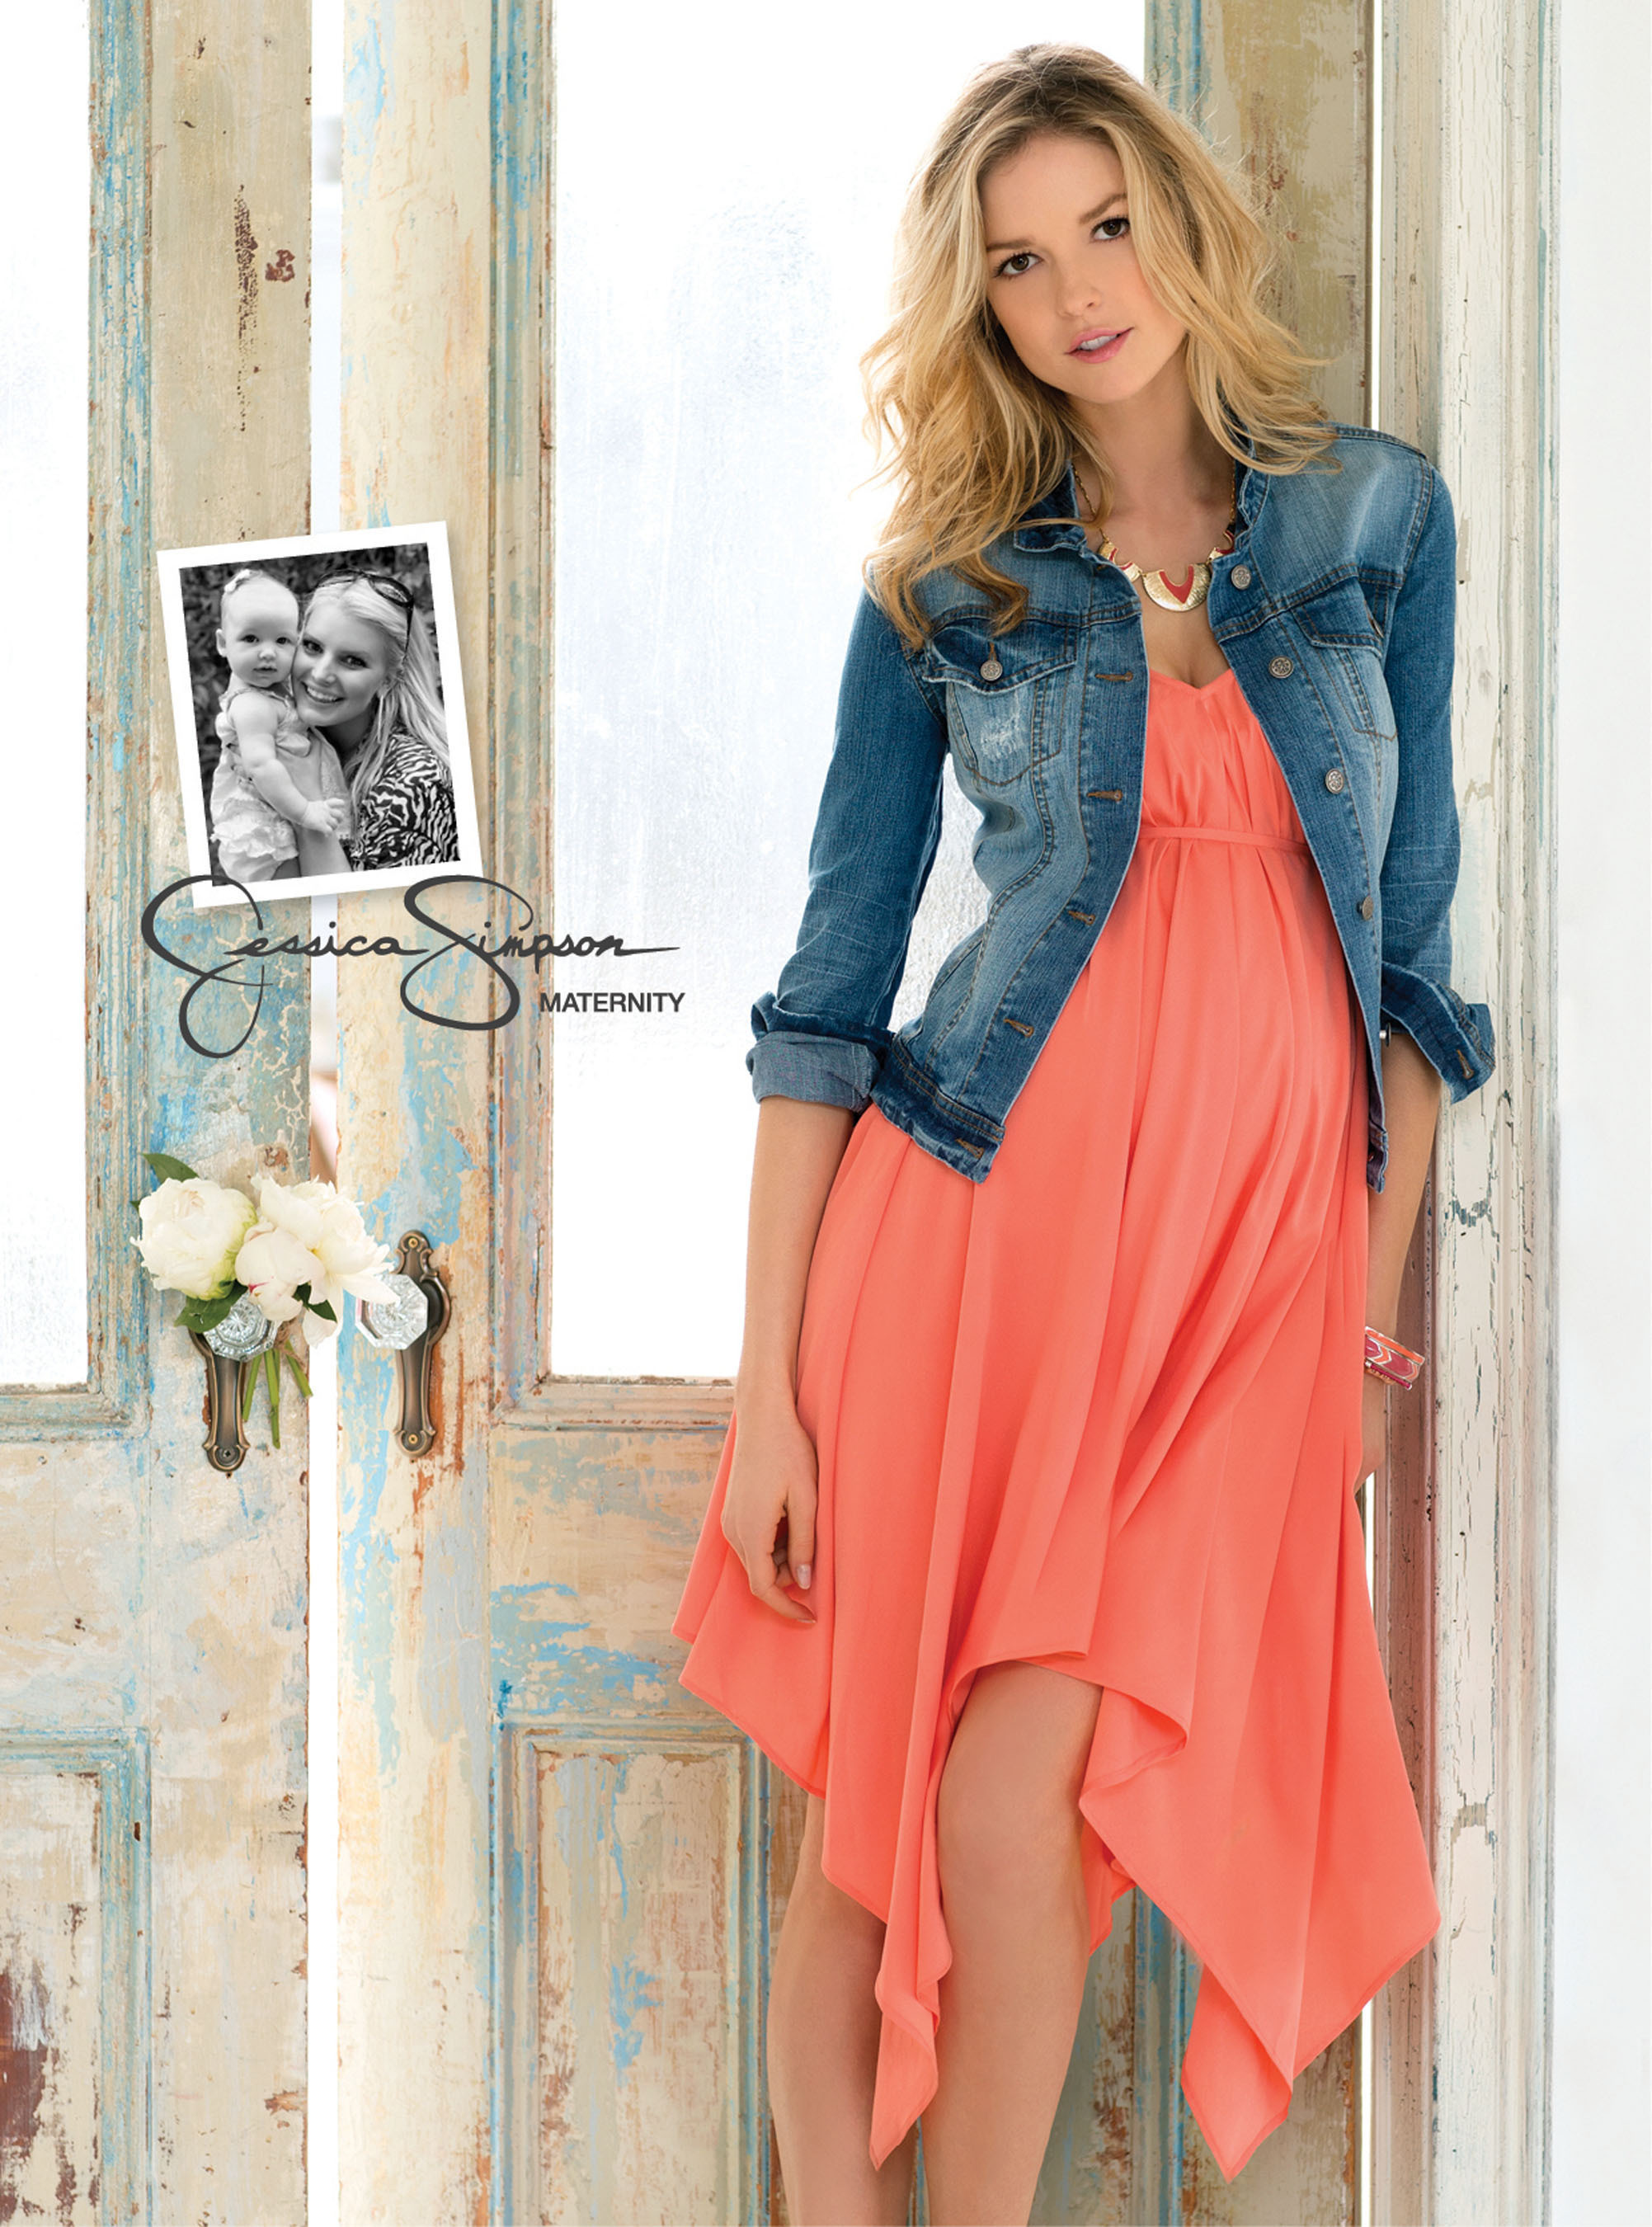 A look from the Jessica Simpson(R) Maternity Spring 2013 collection.  Dress, $59.00 and Denim Jacket, $69.00, available at select Destination Maternity(R), Motherhood(R) Maternity, and Macy's(R) stores in February.  (PRNewsFoto/Destination Maternity Corporation)